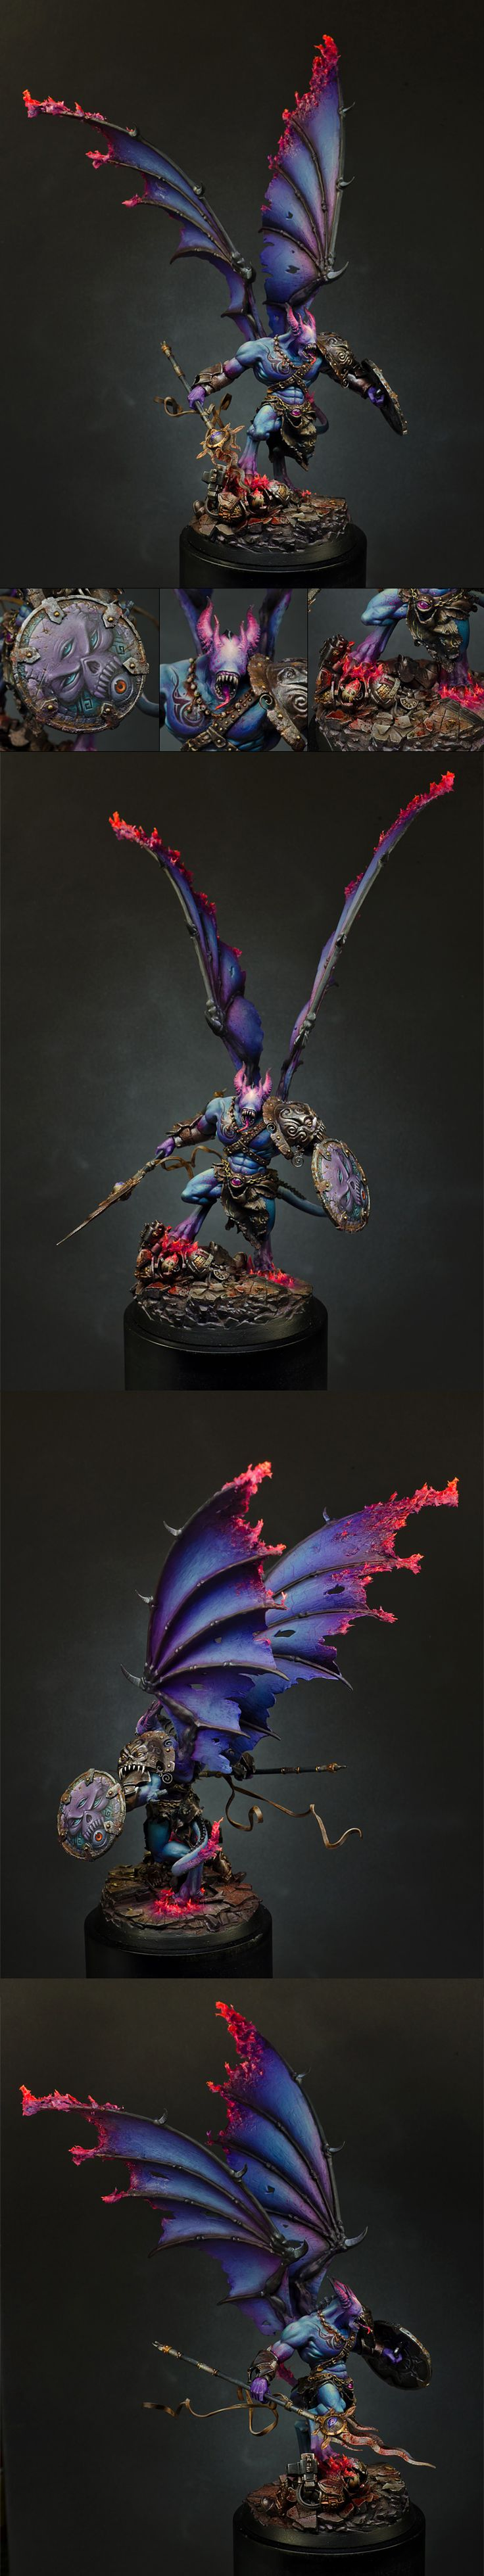 Warhammer 40k, Spectacular custom Chaos Deamon Prince of Tzeentch, clearly a powerful Sorcerer